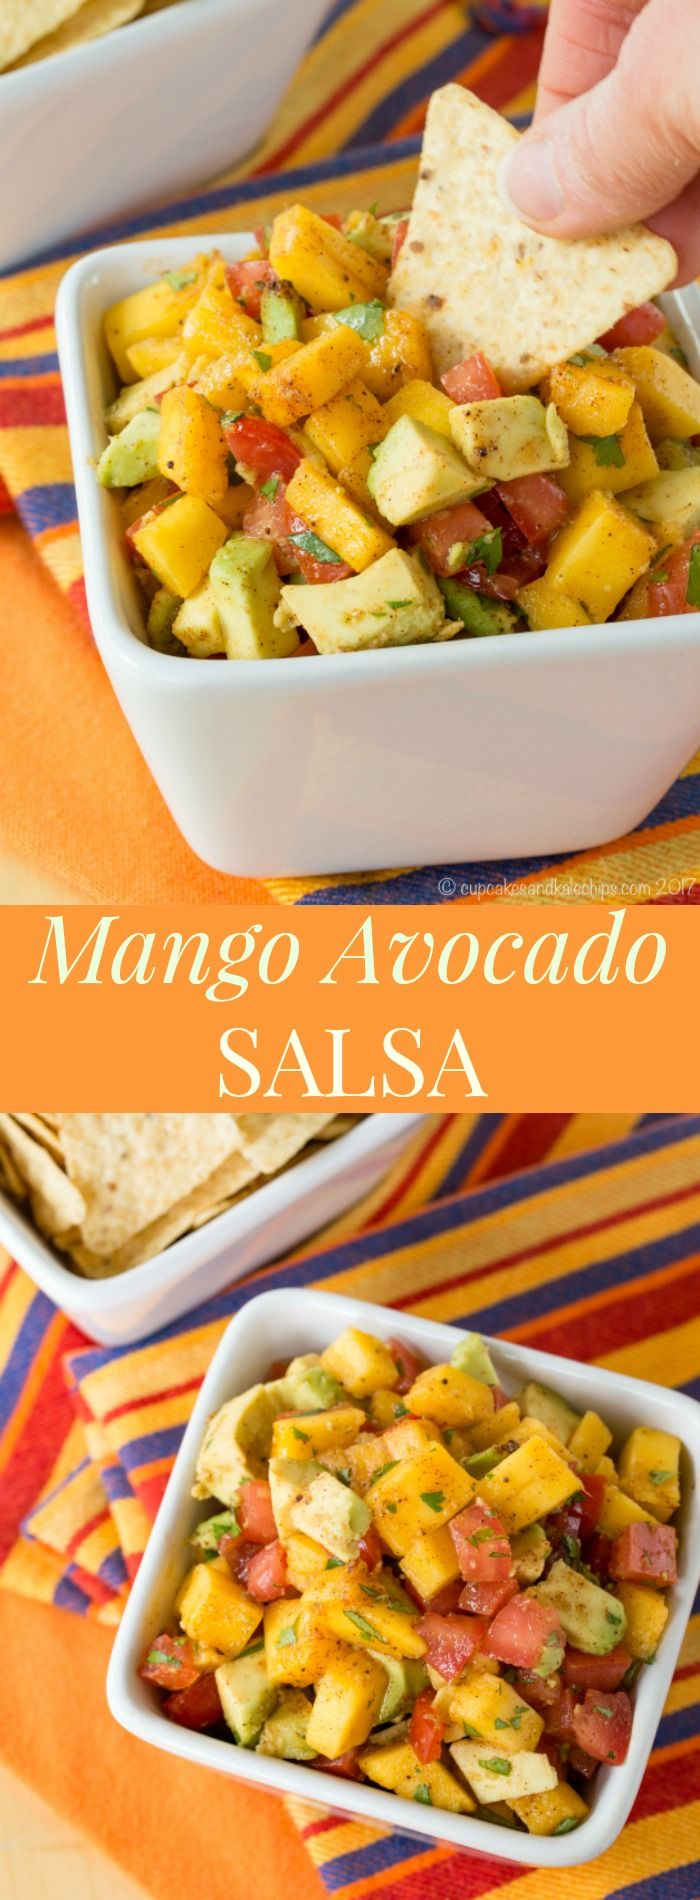 Mango Avocado Salsa - an easy fruit salsa recipe that's kid-friendly. Perfect for chicken, fish tacos, dipping chips and more.